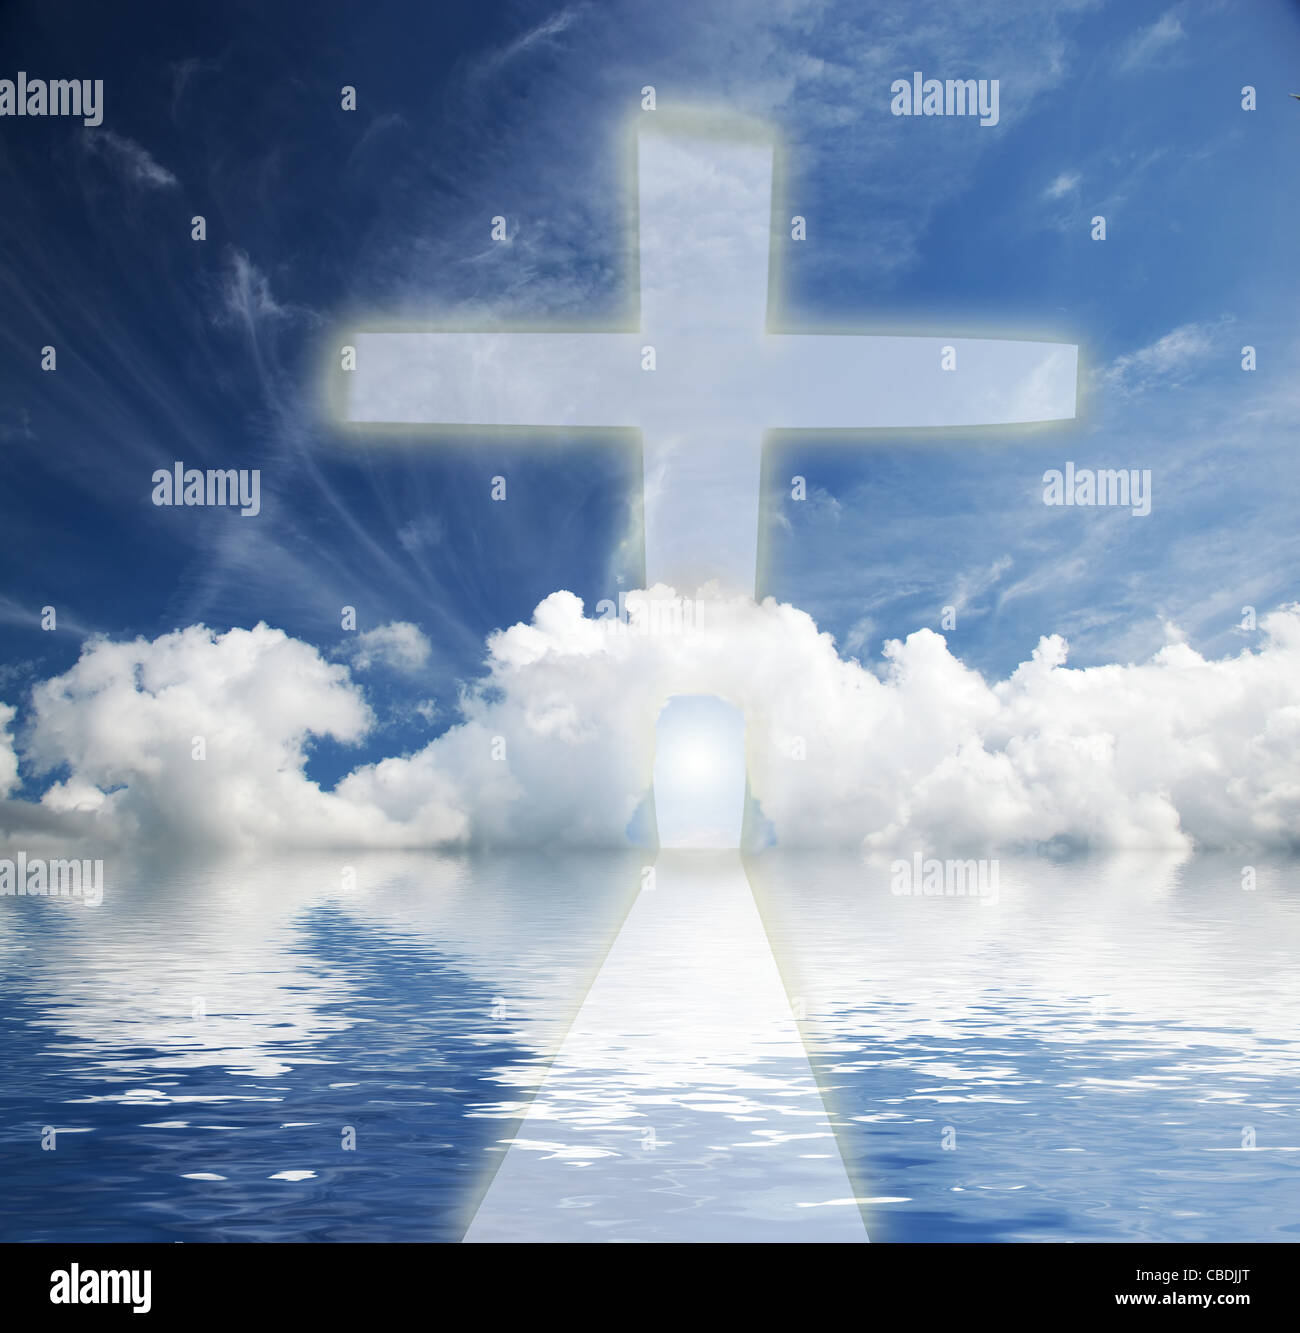 The way to heaven - a heaven, religion, new life concept - Stock Image